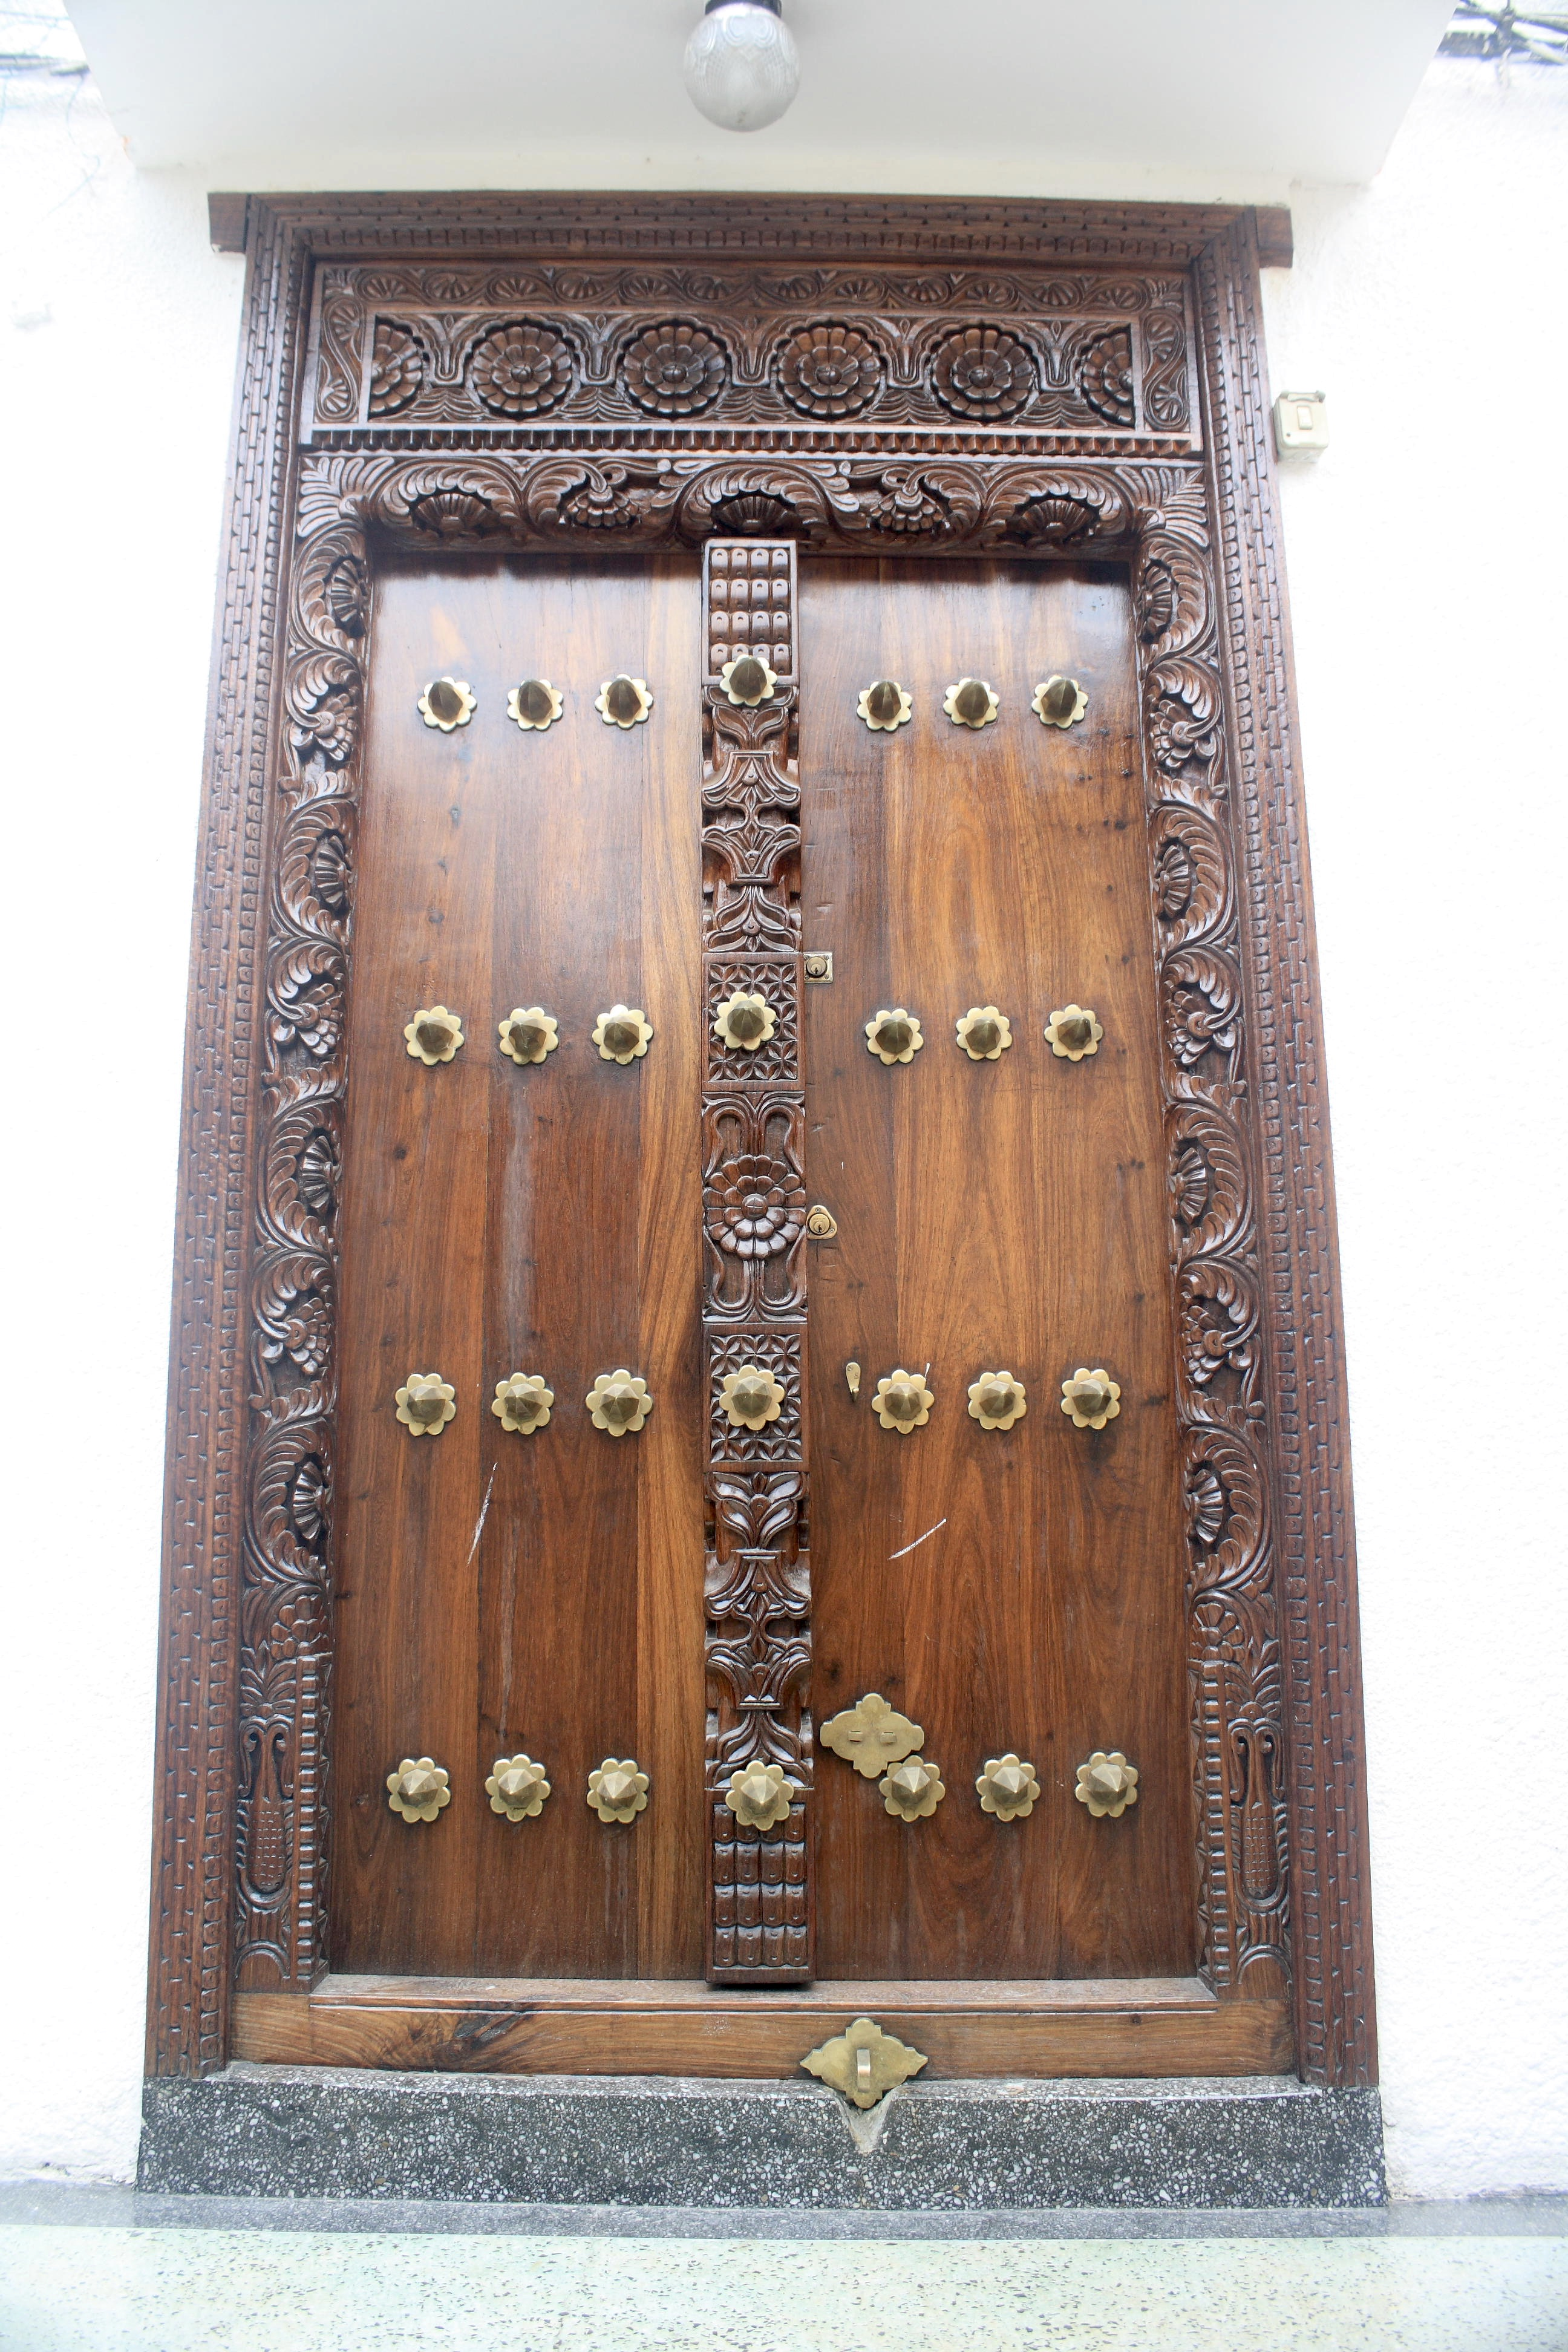 A Zanzibar door in good condition with shiny wood